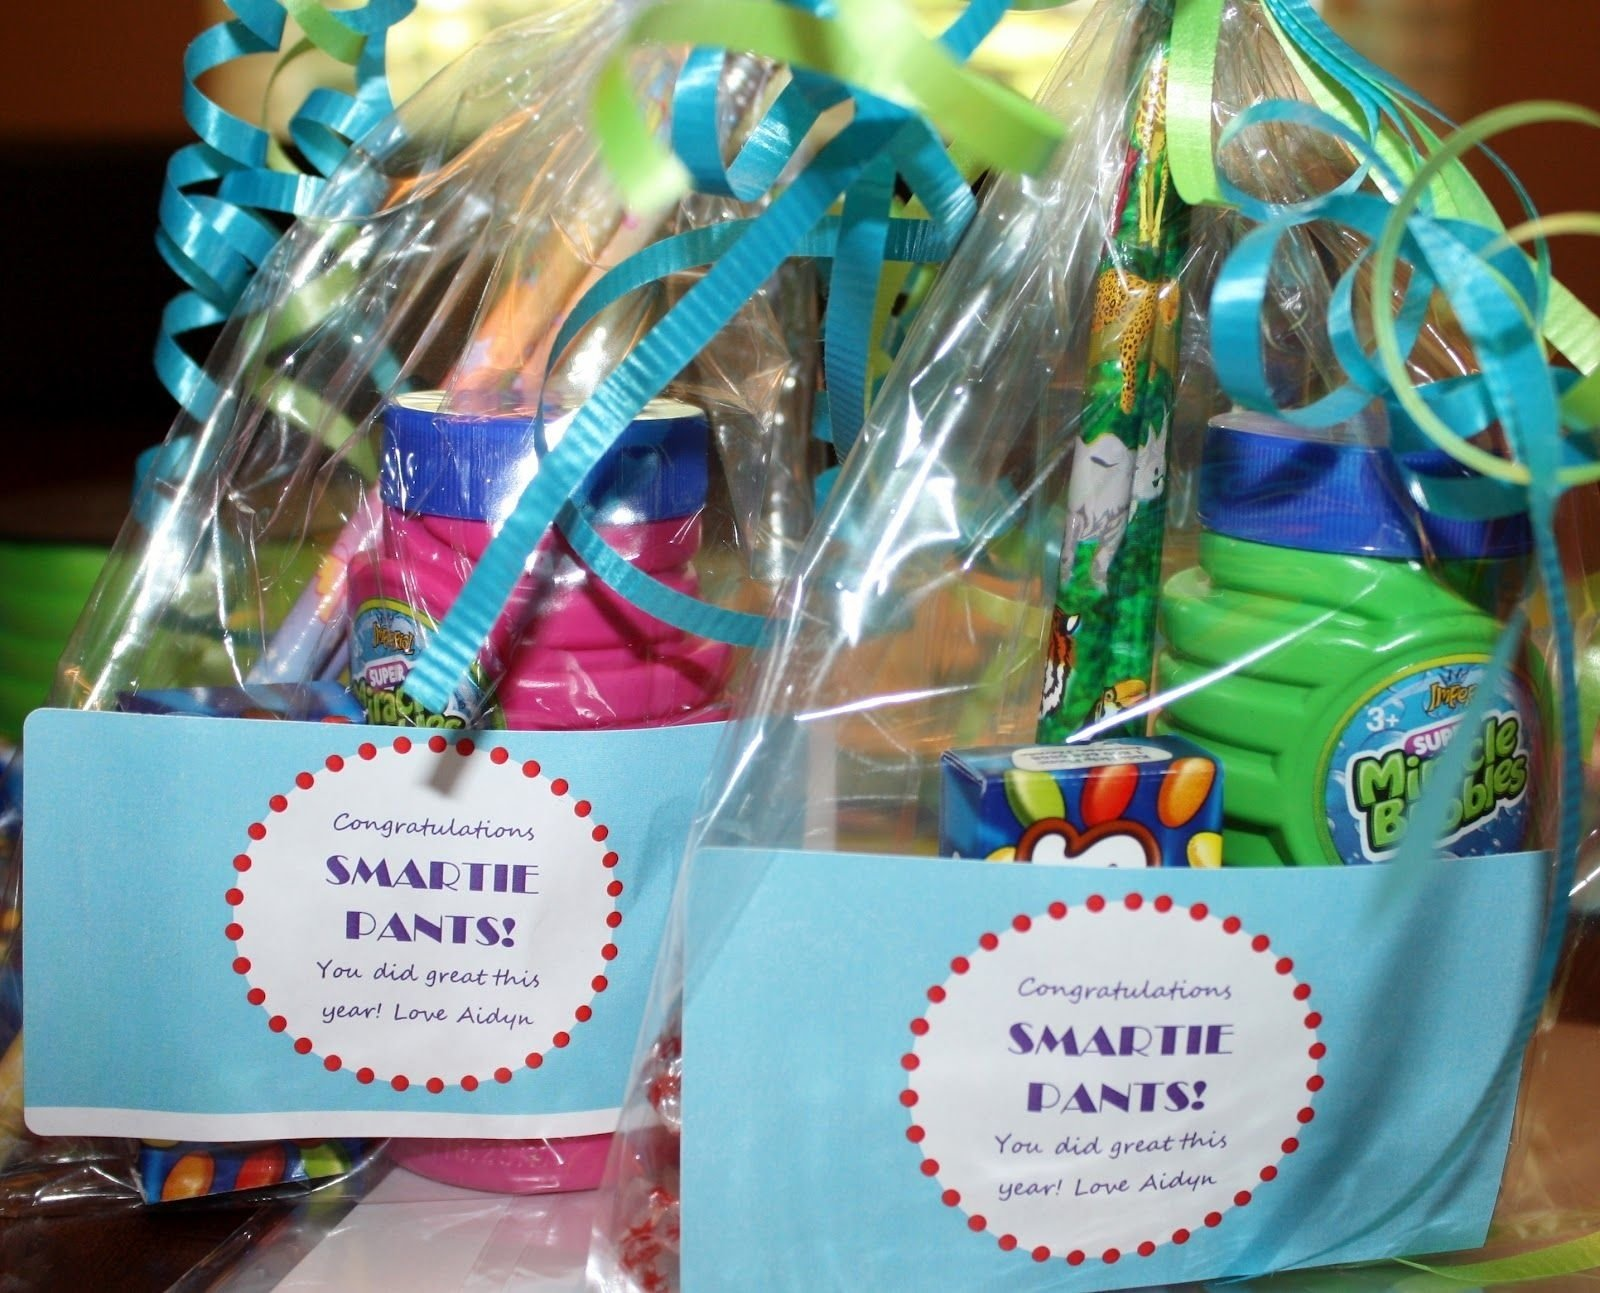 10 Lovely Elementary School Graduation Gift Ideas easy to make inexpensive kindergarten graduation or end of the year 4 2020